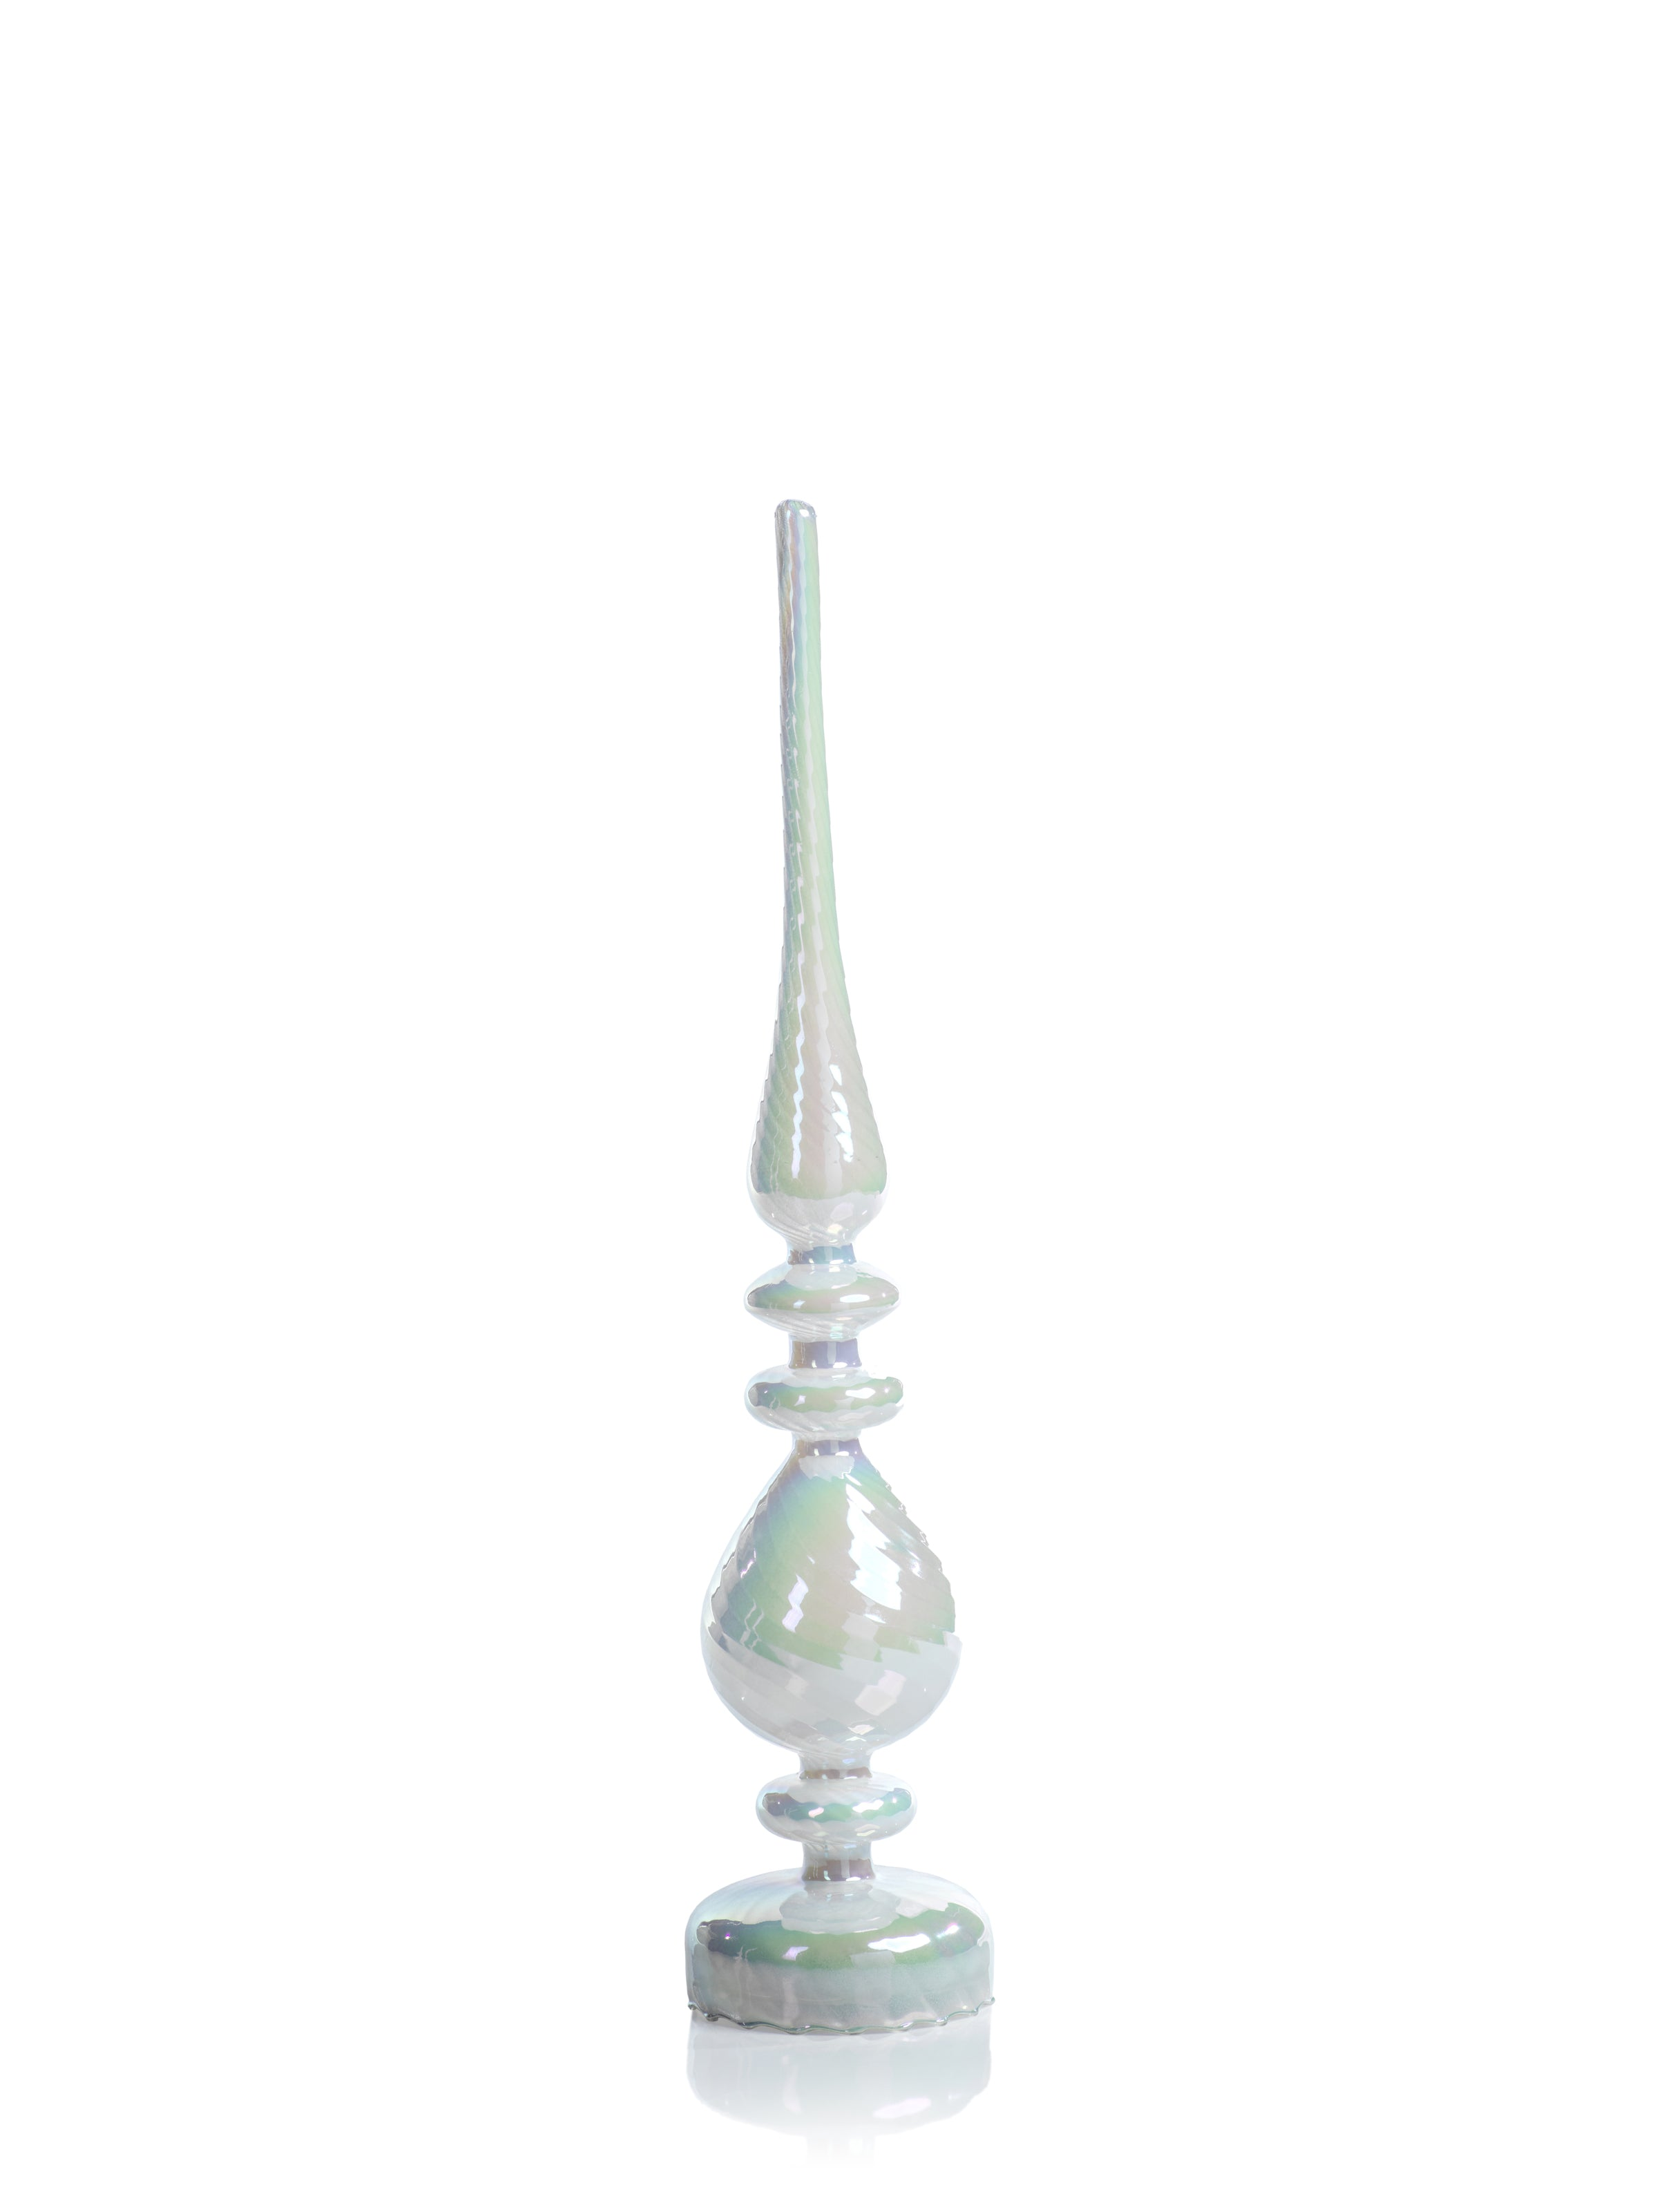 LED Glass Finial - White